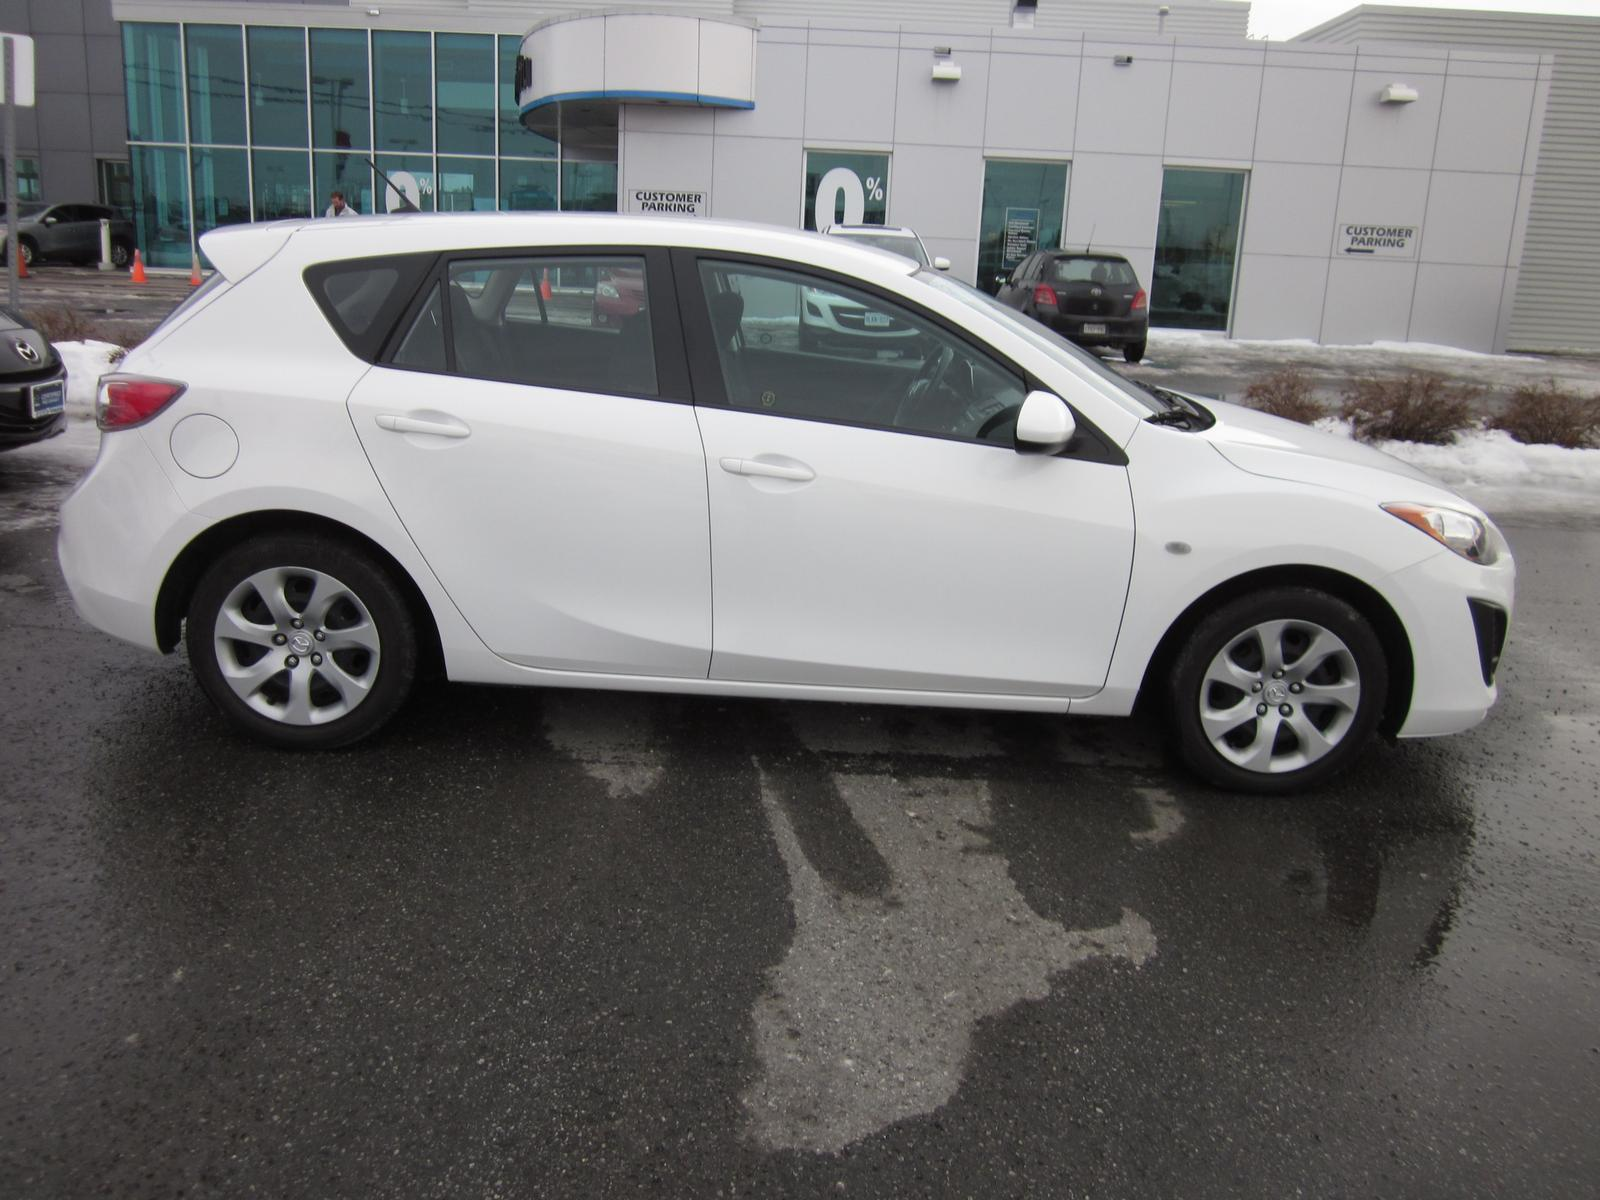 Used 2010 Mazda 3-SPORT GX in Kanata for sale free image editor Wallpaper